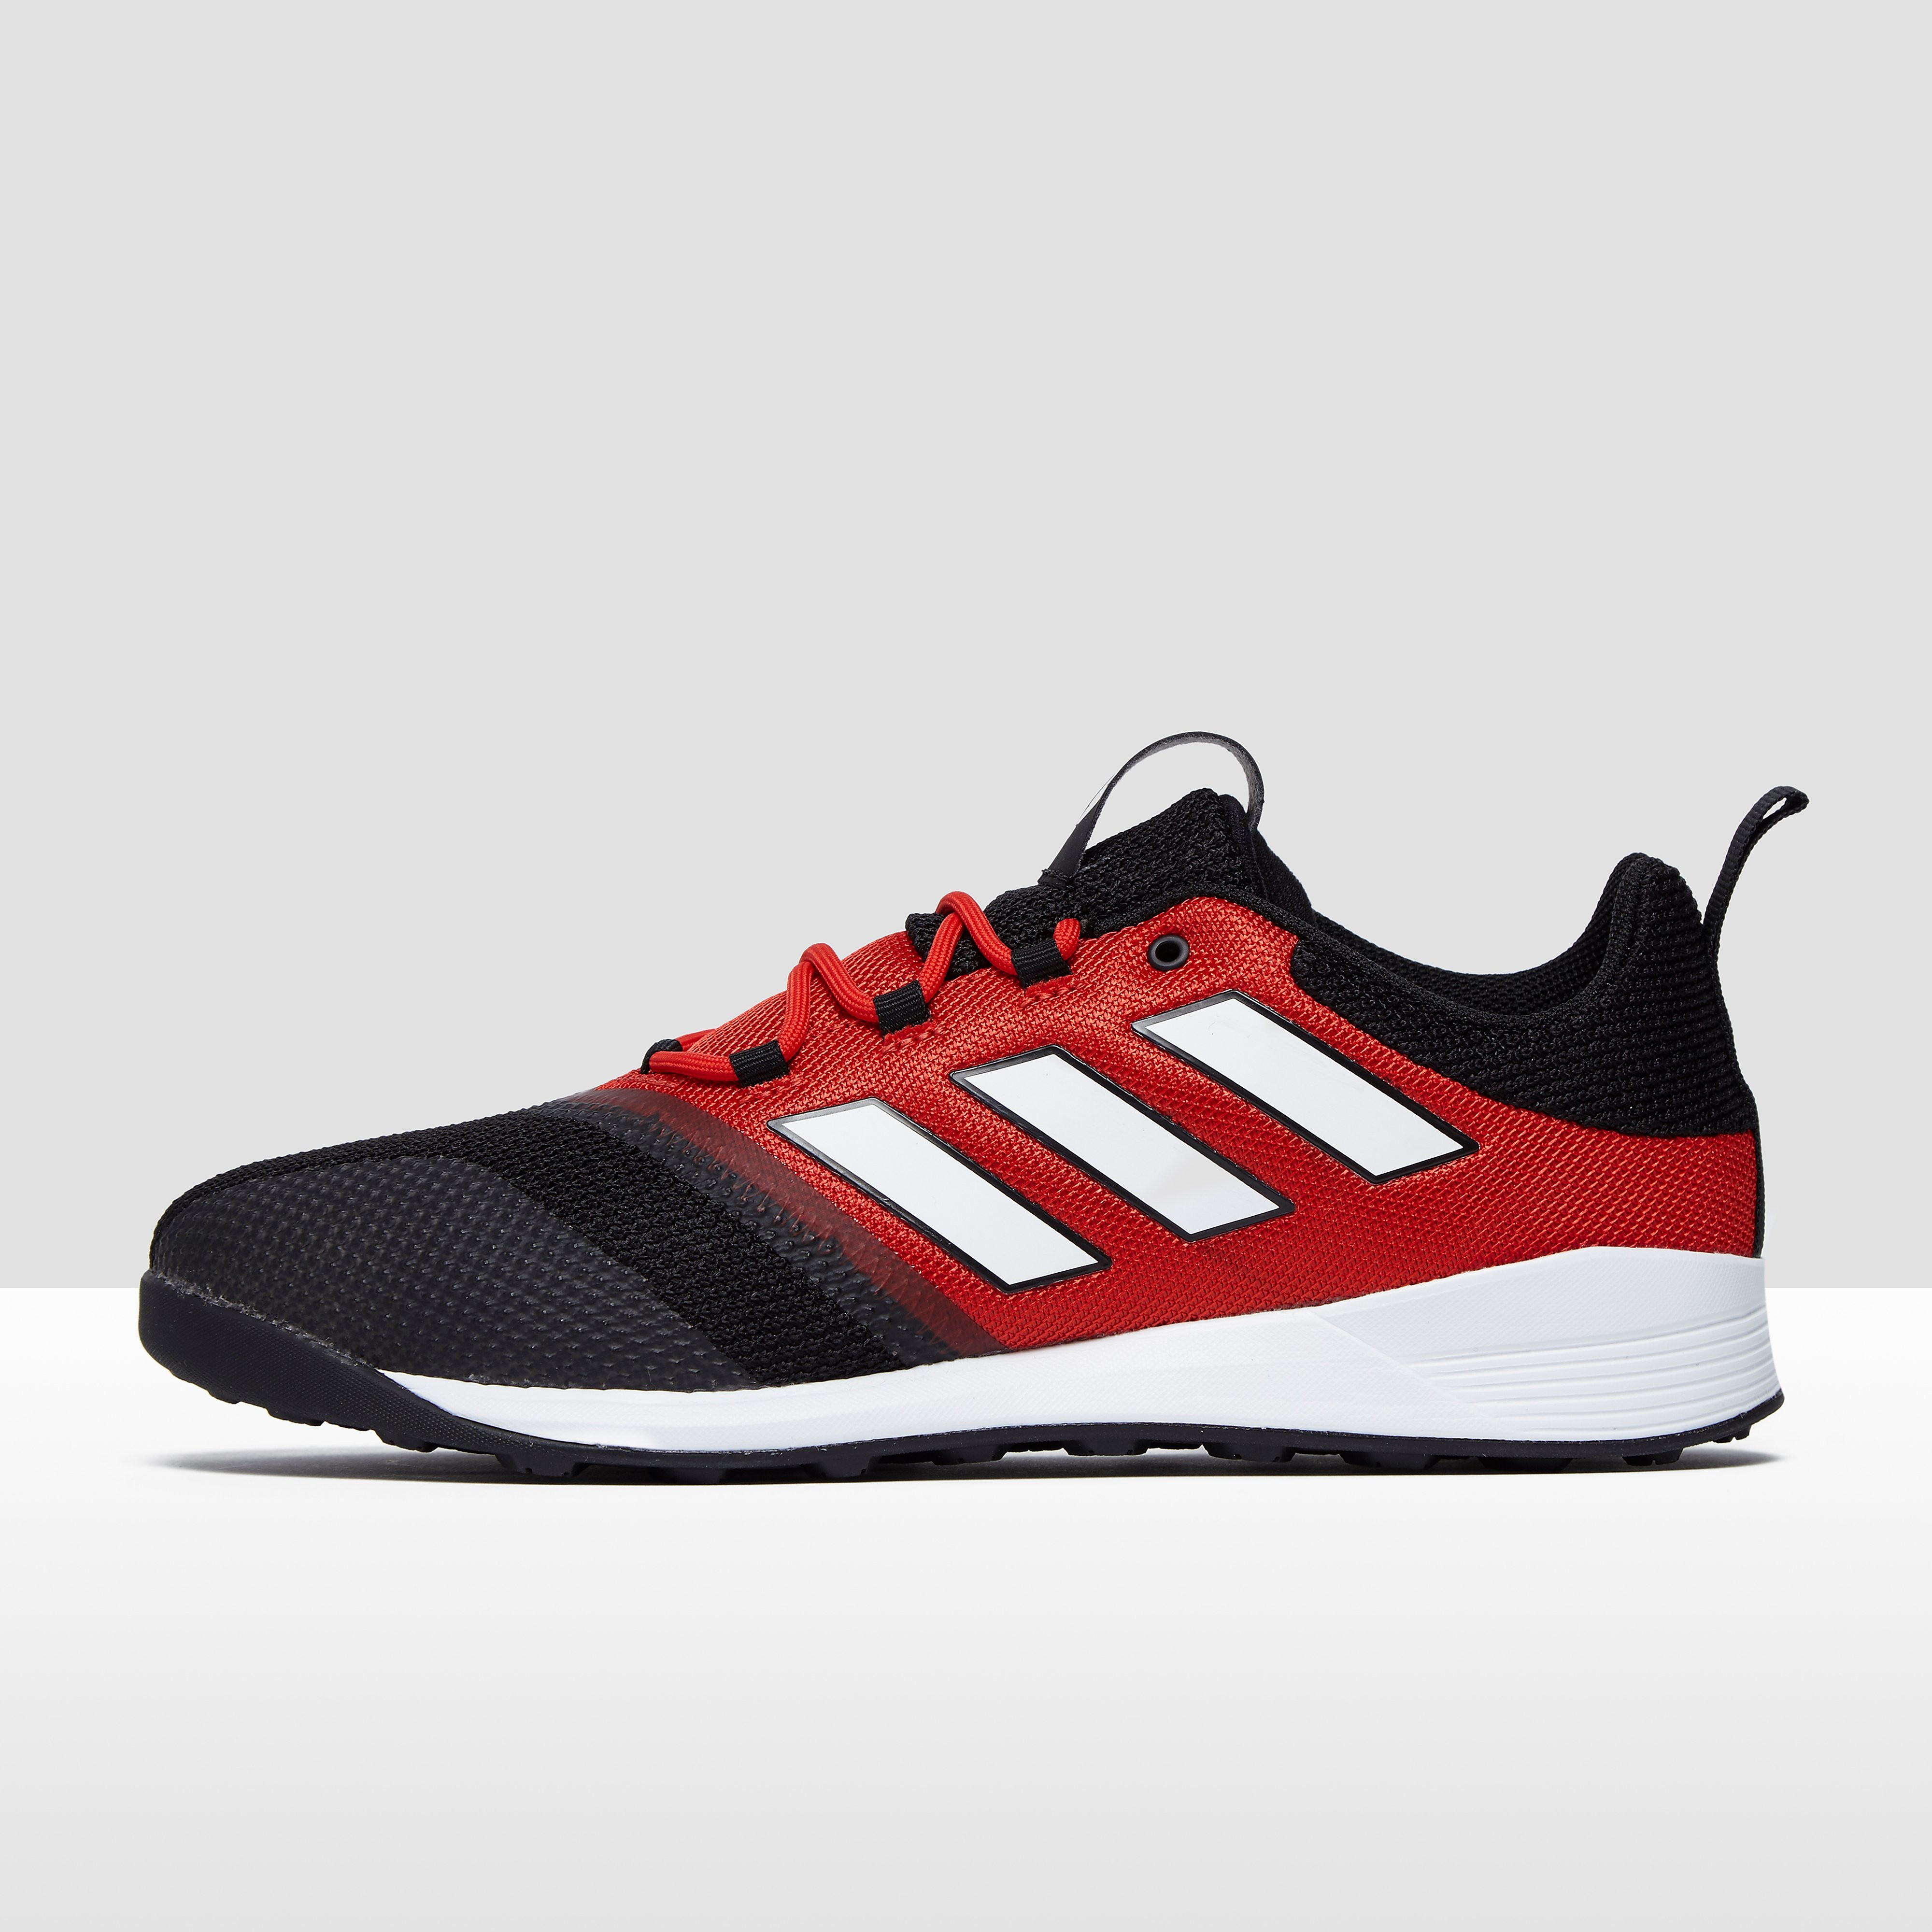 adidas Red Limit ACE Tango TR 17.2 Turf Football Boots